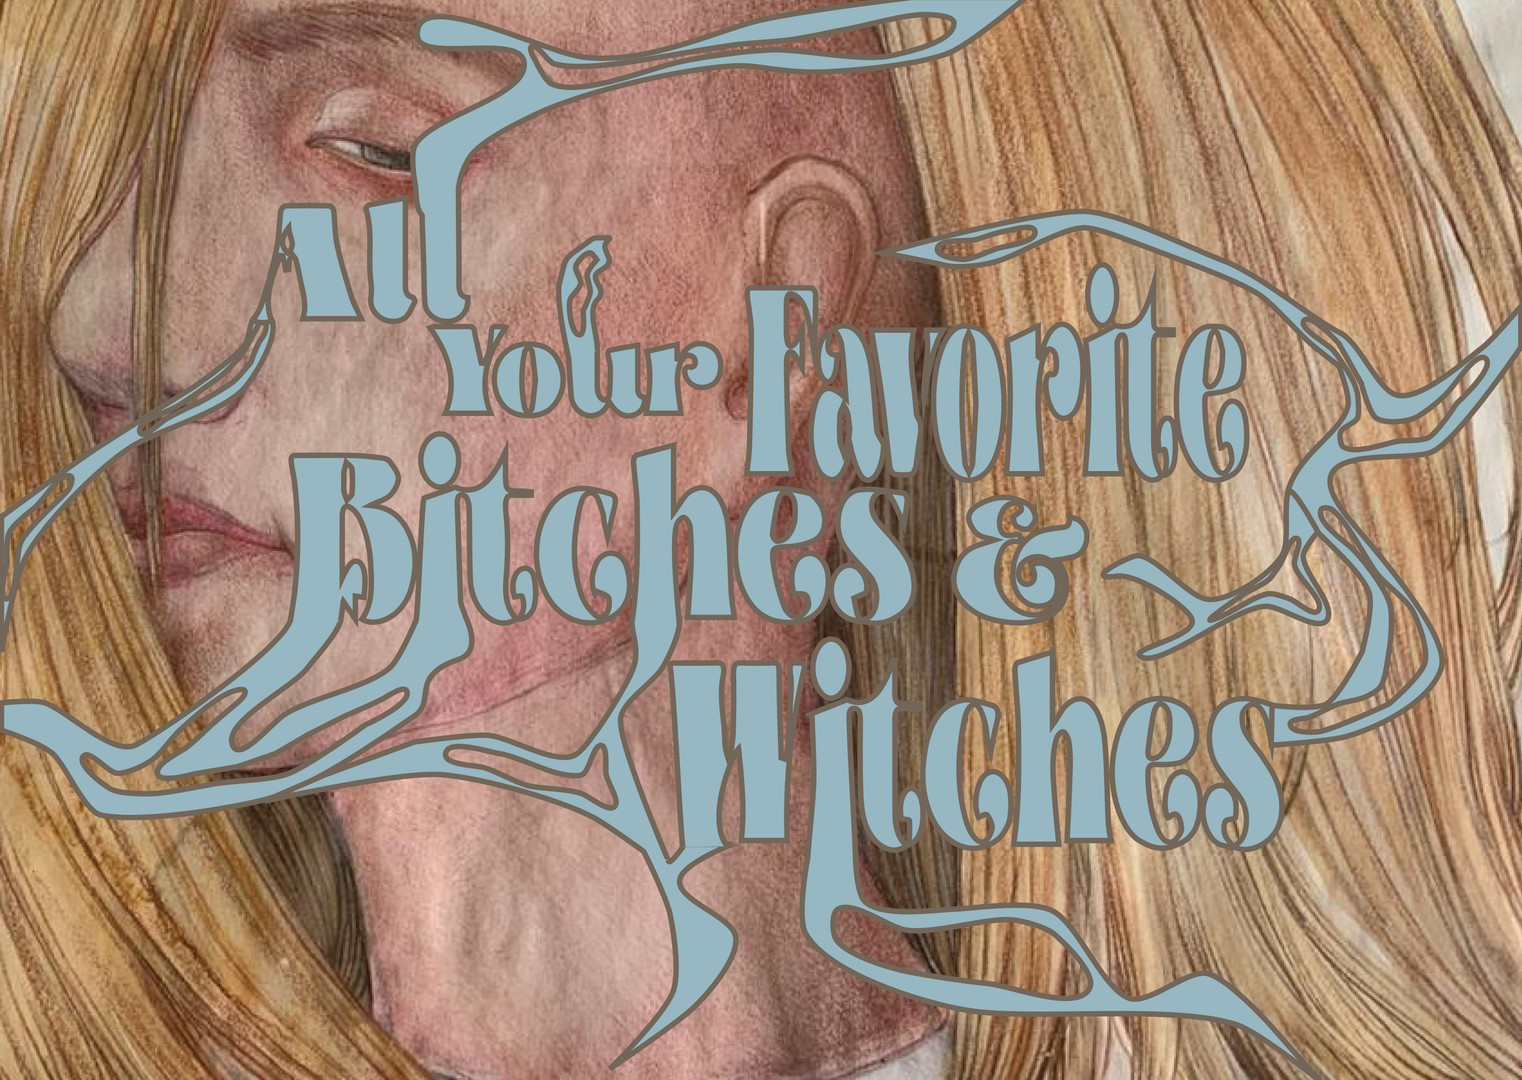 All your favourite bitches & witches